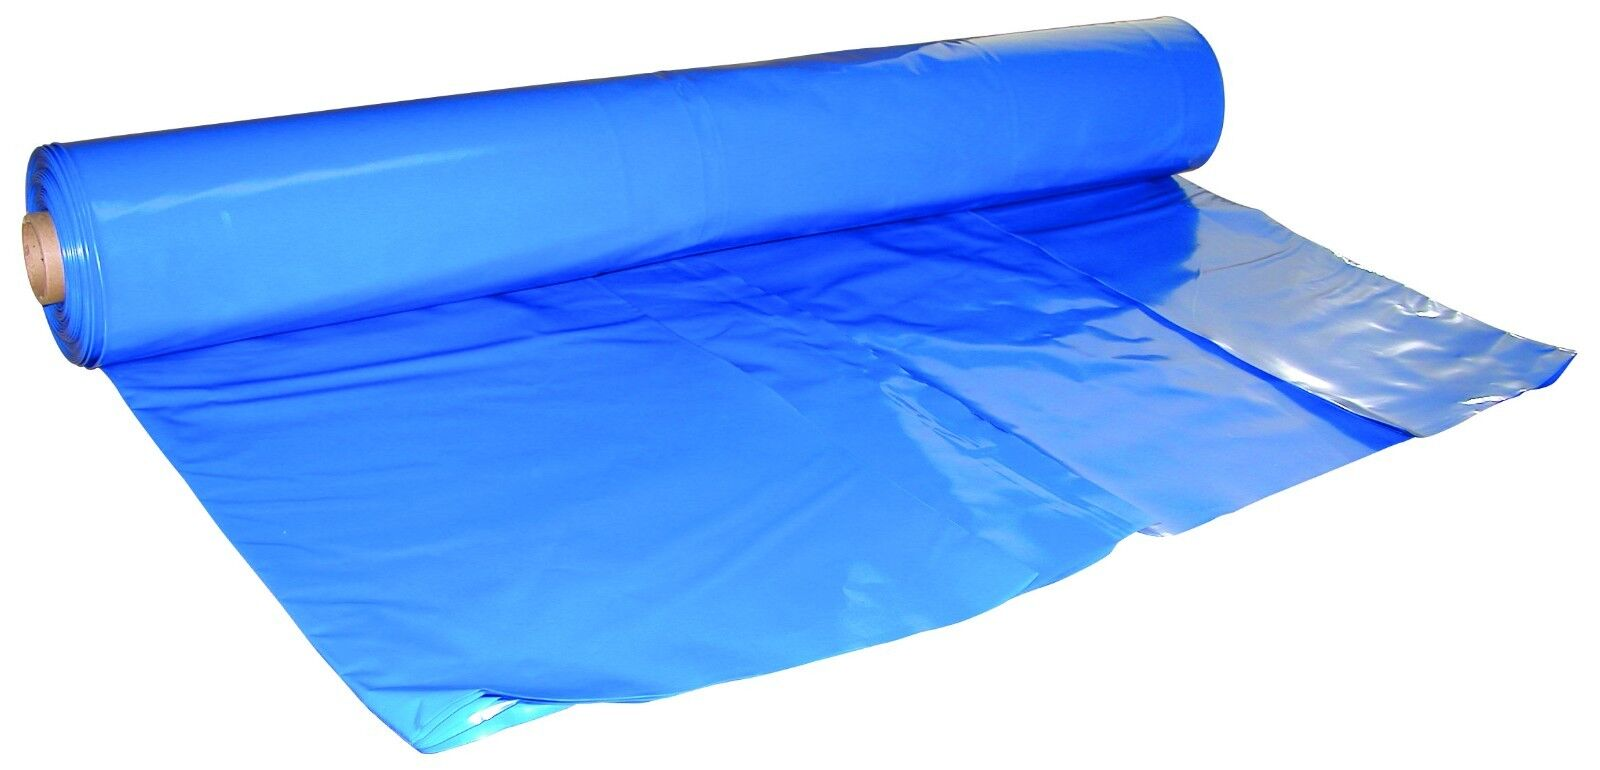 32 ft. x 100 ft. bluee, 7 Mil Shrink Wrap - DS-327100B